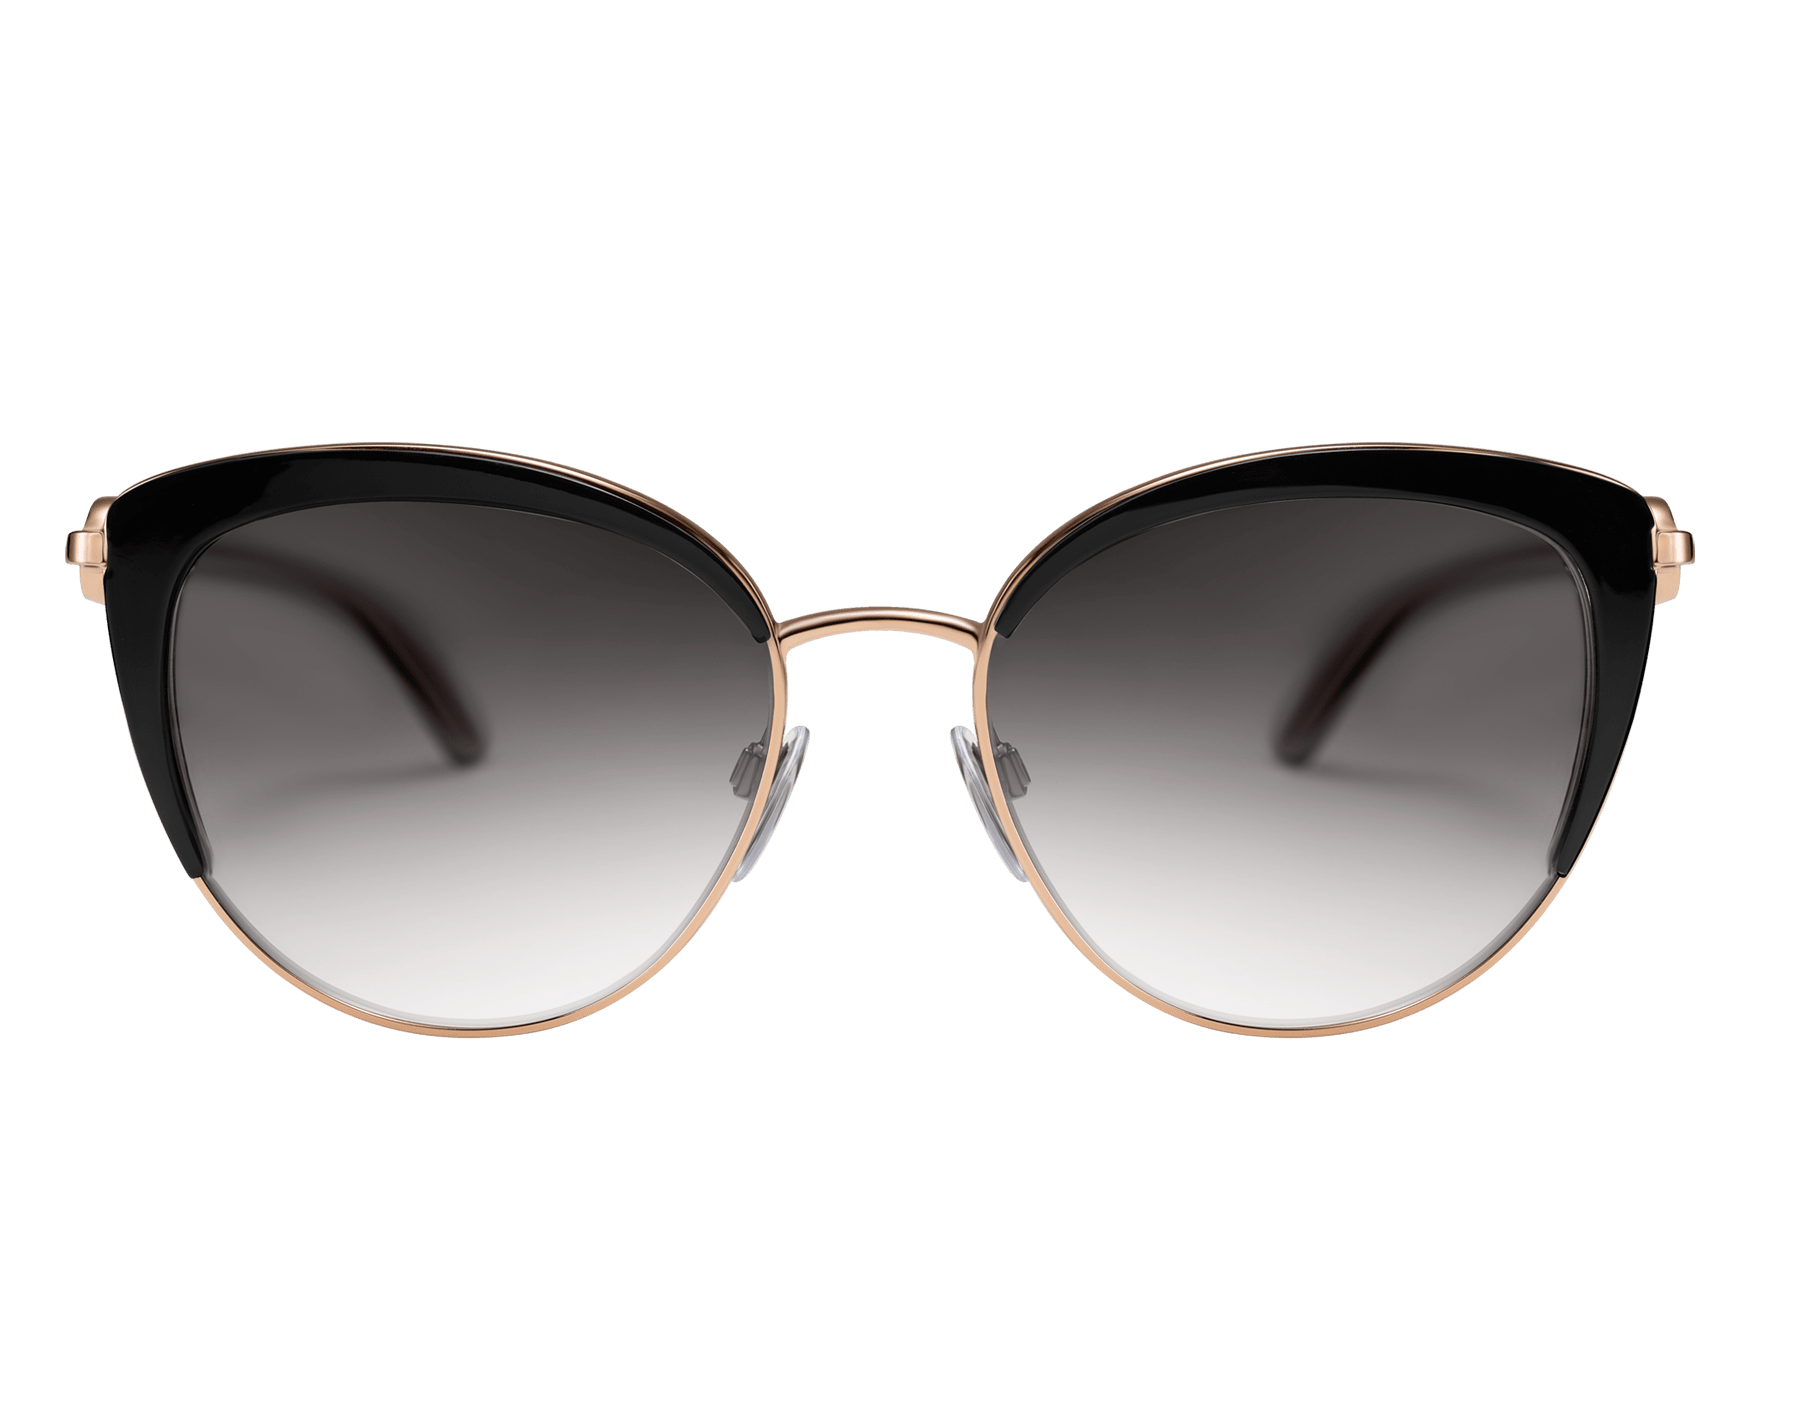 BVLGARI BVLGARI soft cat-eye metal sunglasses featuring a round décor with double logo. 903913 image 2